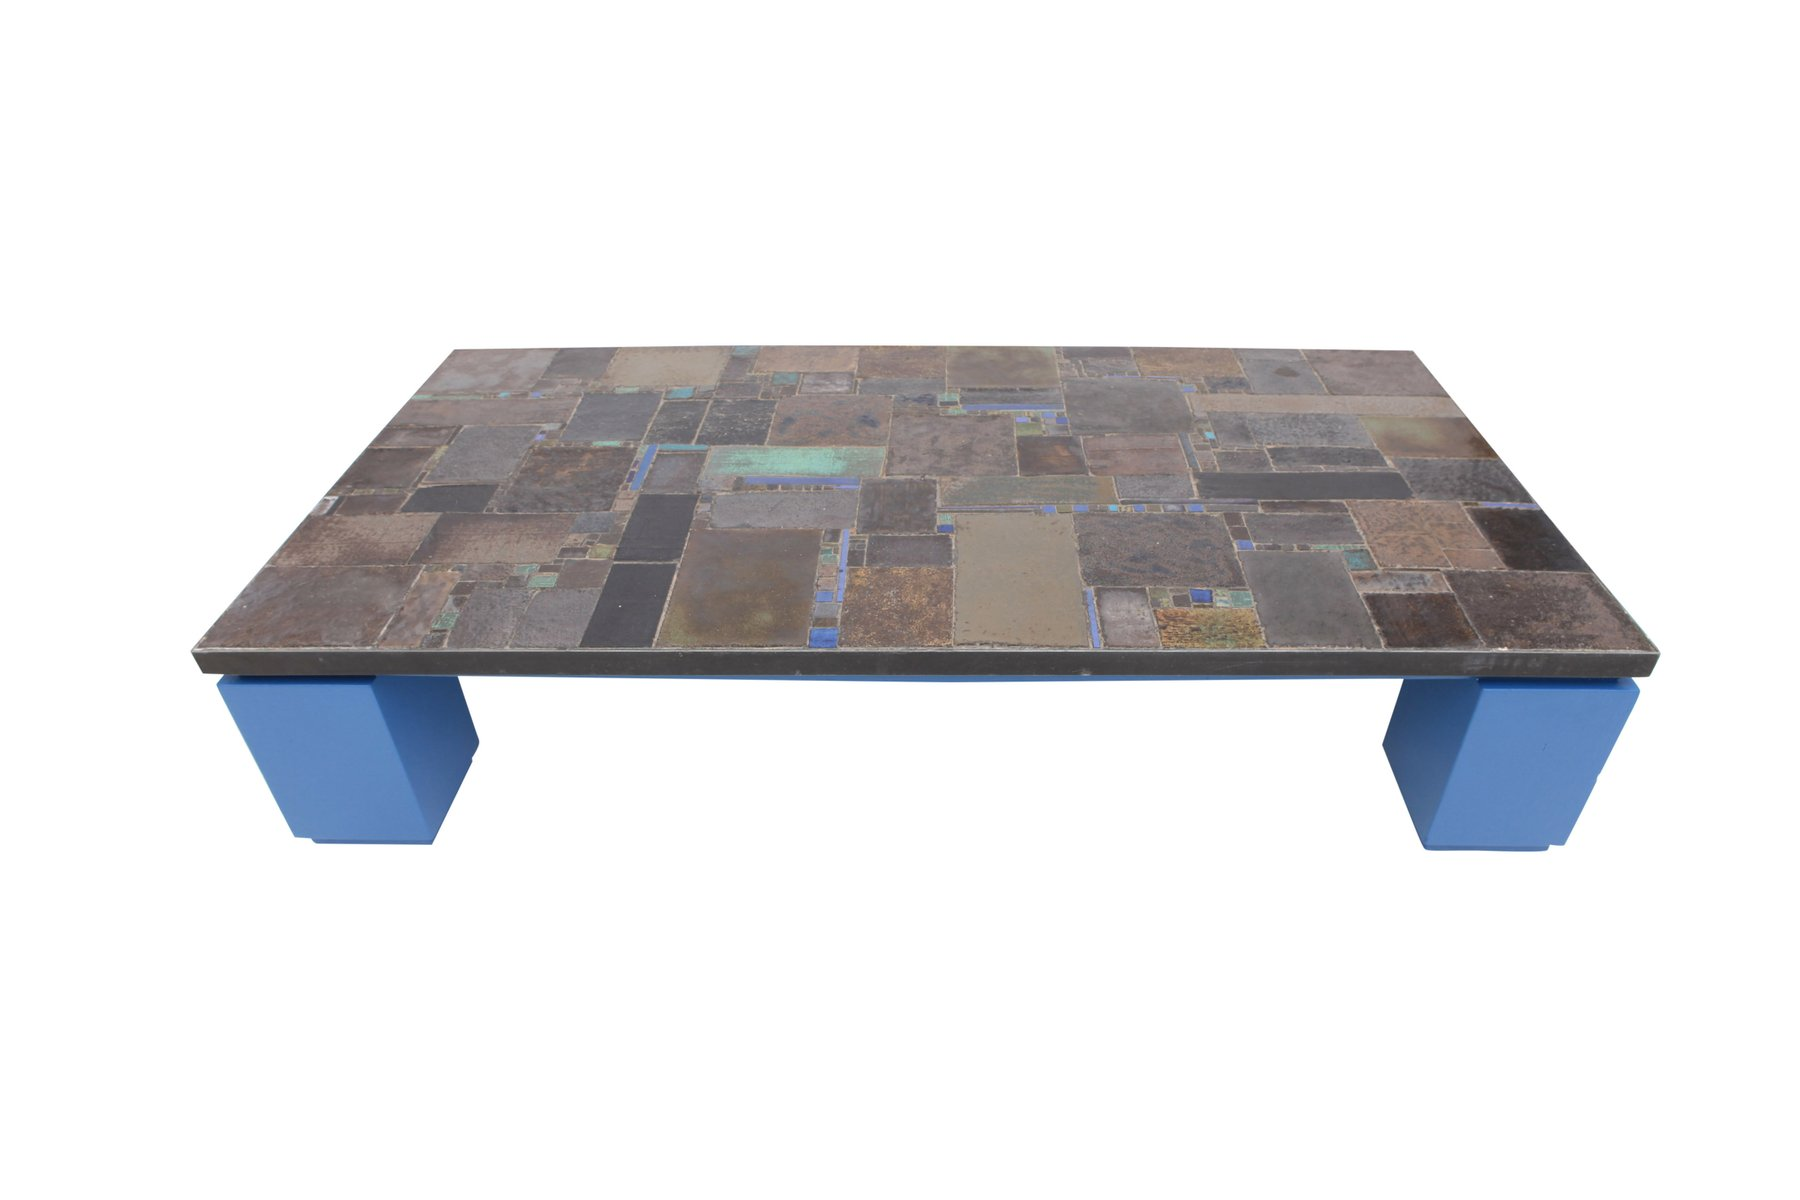 Ceramic tile coffee table from pia manu for sale at pamono ceramic tile coffee table from pia manu dailygadgetfo Image collections